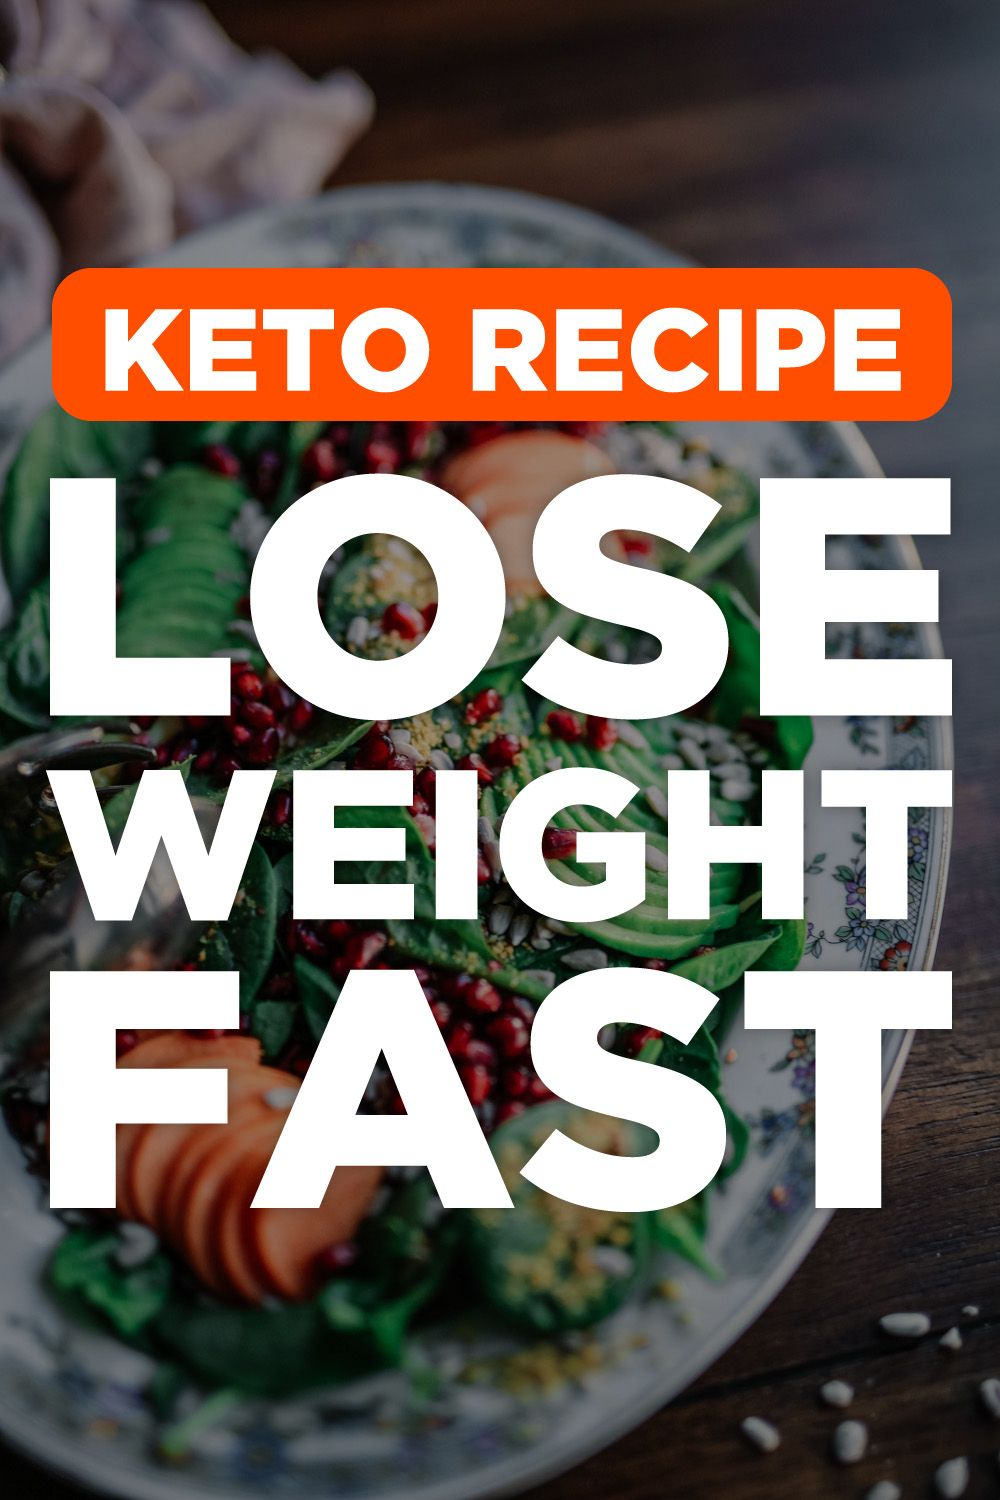 want to lose weight, atkins casserole, how to lose 15 pounds, clean eating recipes, low fat low carb, ways to lose weight fast quick, alkaline diet, low carb vegetarian dinners, keto diet alcohol, workout lose, the belly diet, lose fat, protien diet, weight loss nutrition plan, i need to lose weight fast, cyclic ketogenic diet, losing weight with pcos, keto diet lunch ideas, keto diet explained, keto recipes breakfast, heathy foods,